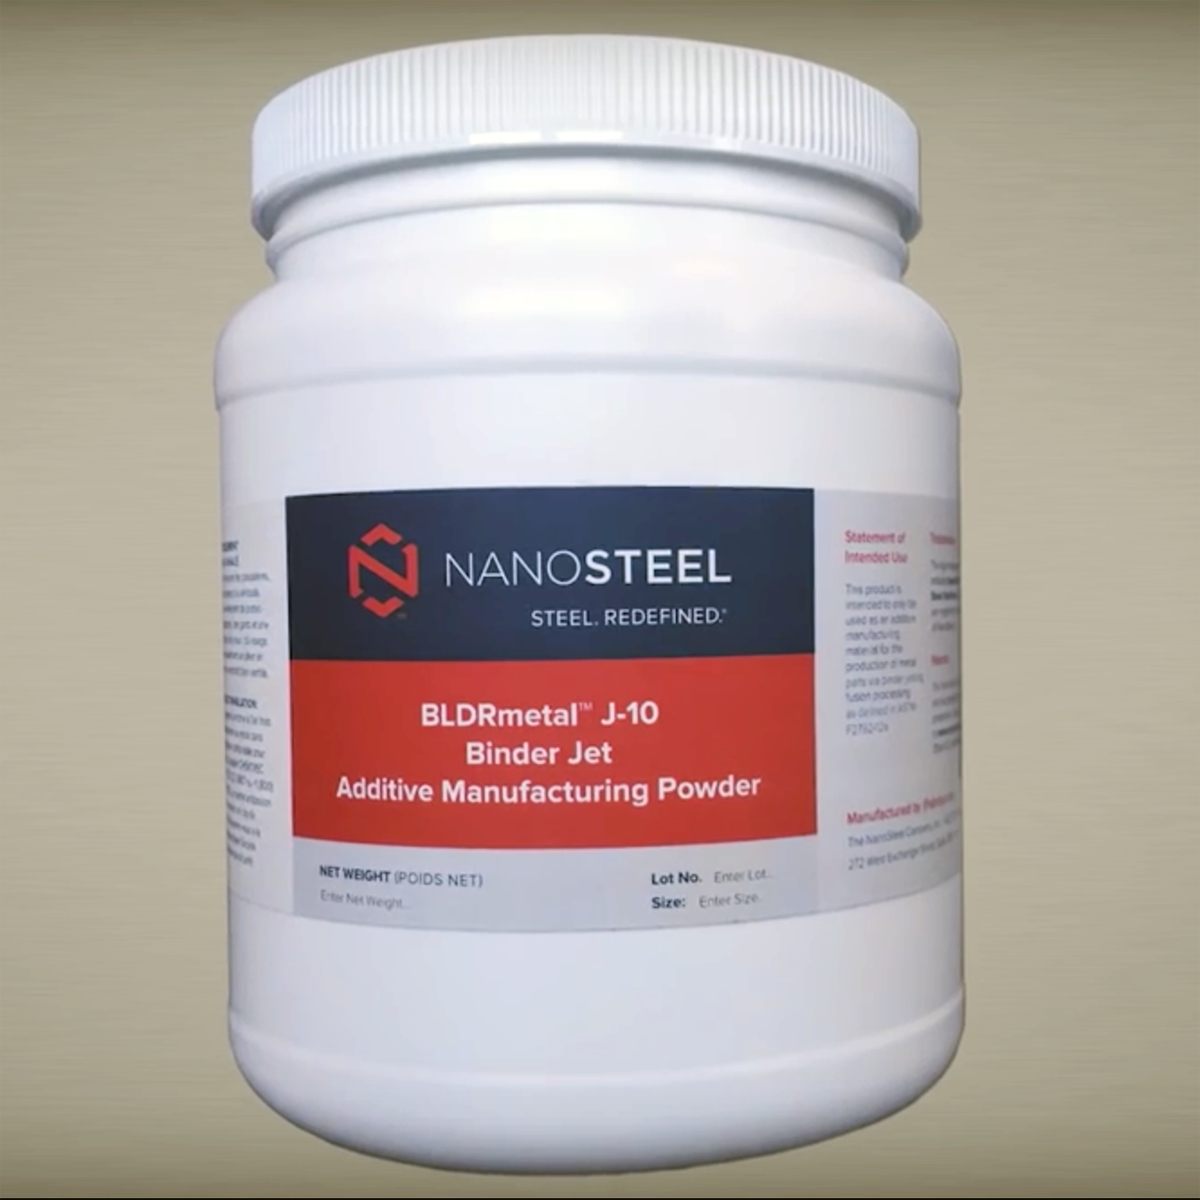 nanosteel enters 3d printing with performance powders for metal